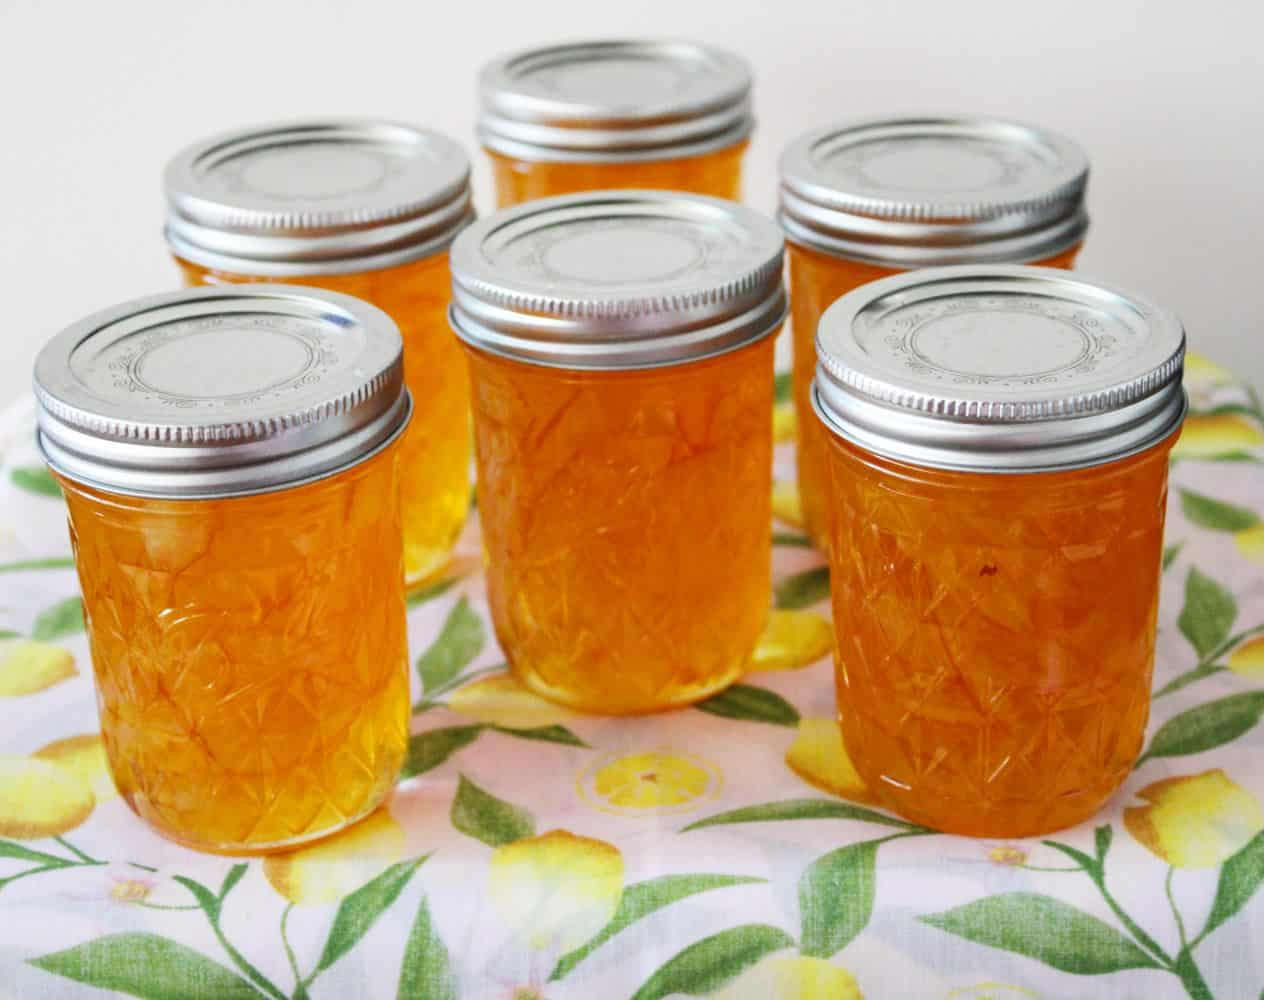 Six jars of Lemon Marmalade on a lemon cloth.